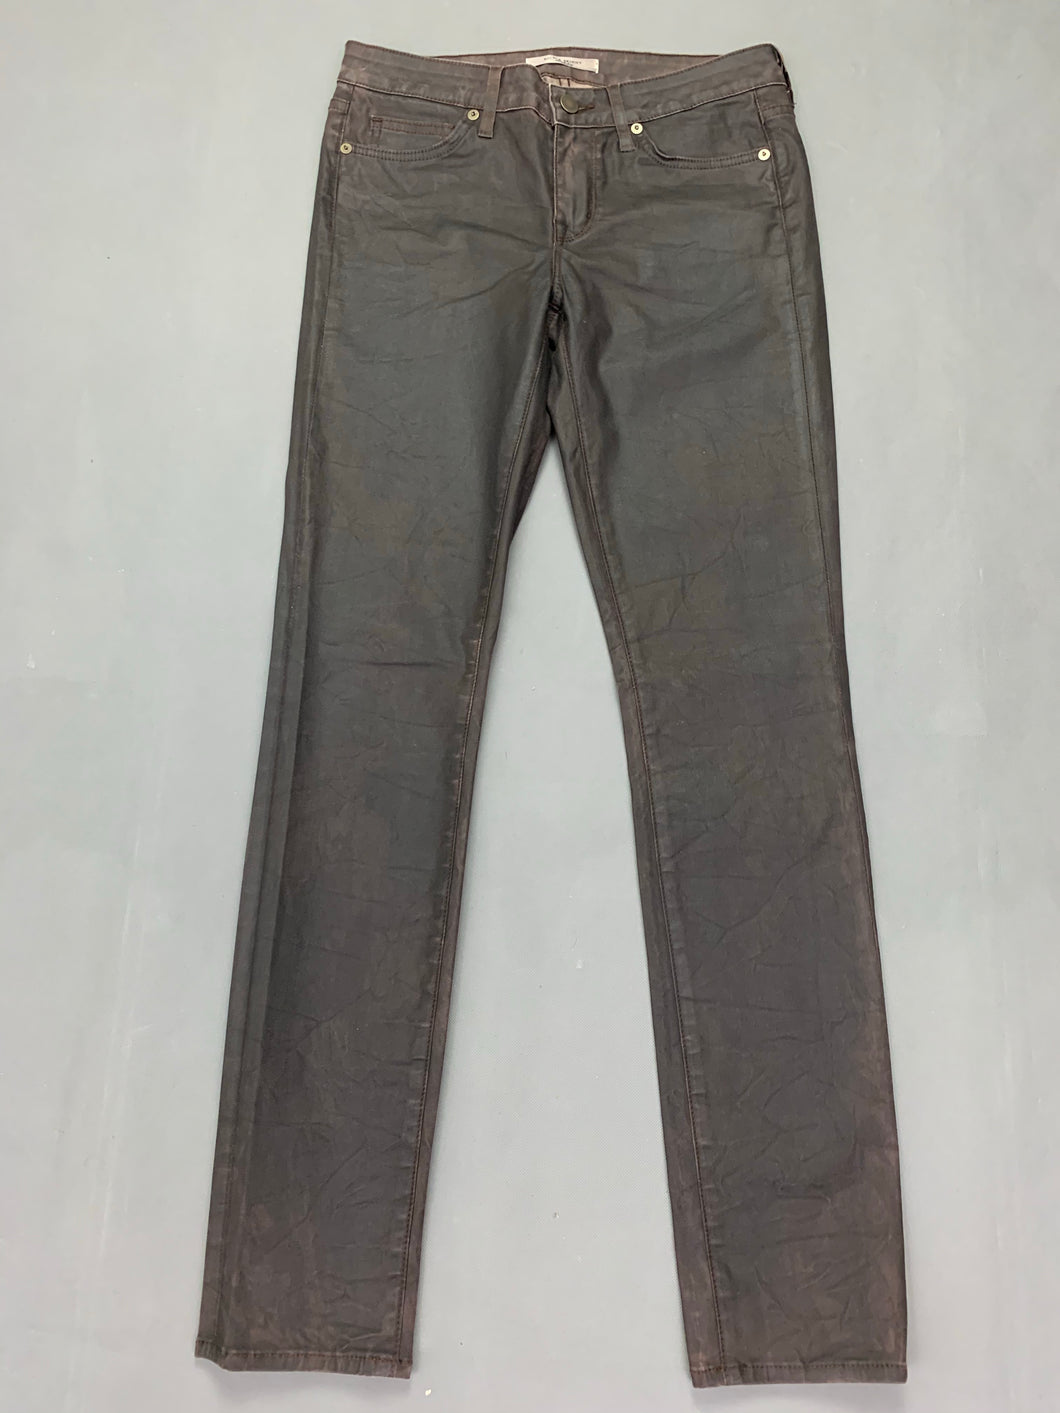 RICH & SKINNY Ladies Bourbon Coated JEANS Size Waist 27